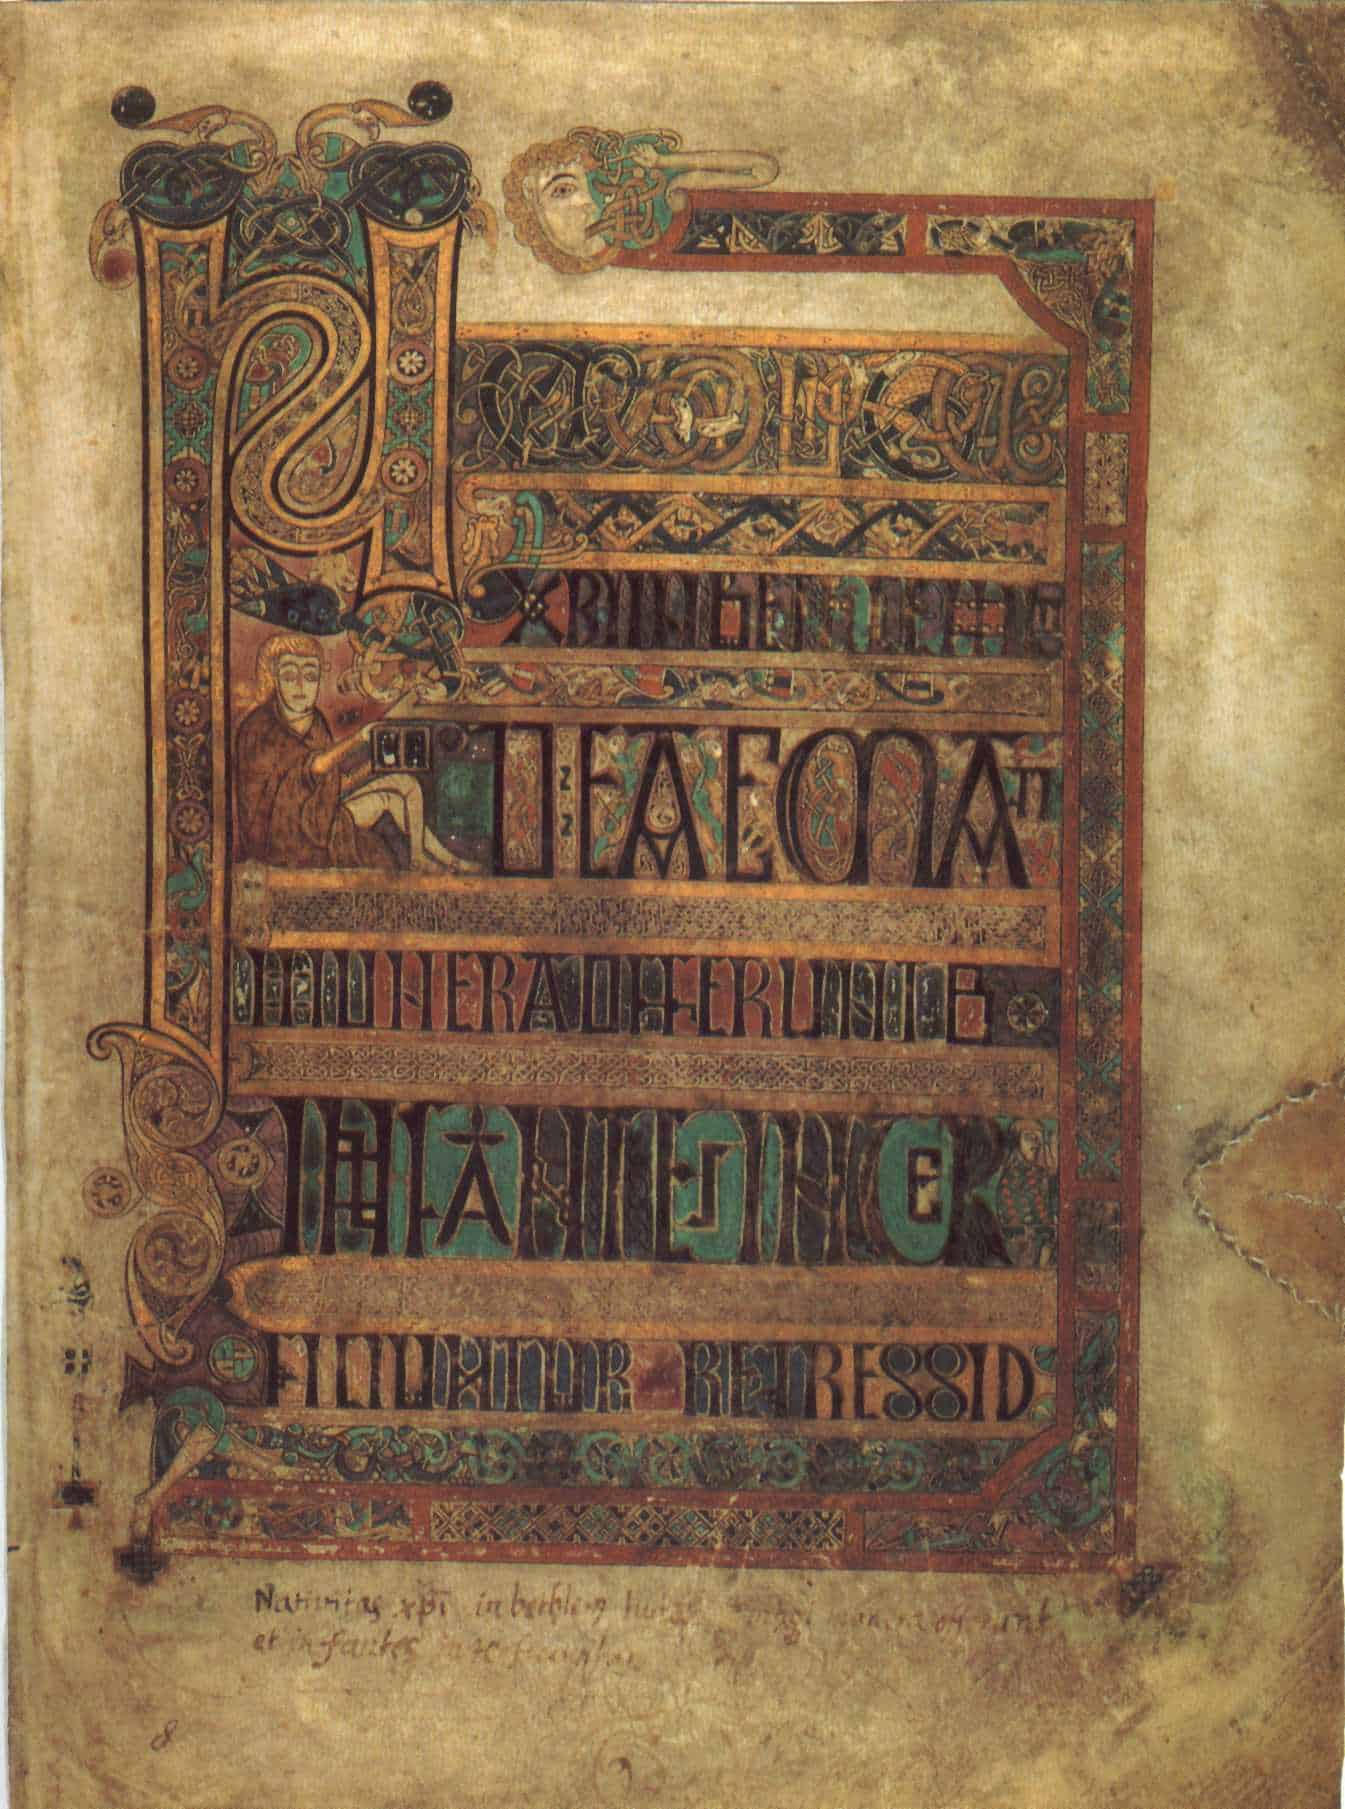 Irish illustrated manuscript page shown at Trinity College Dublin